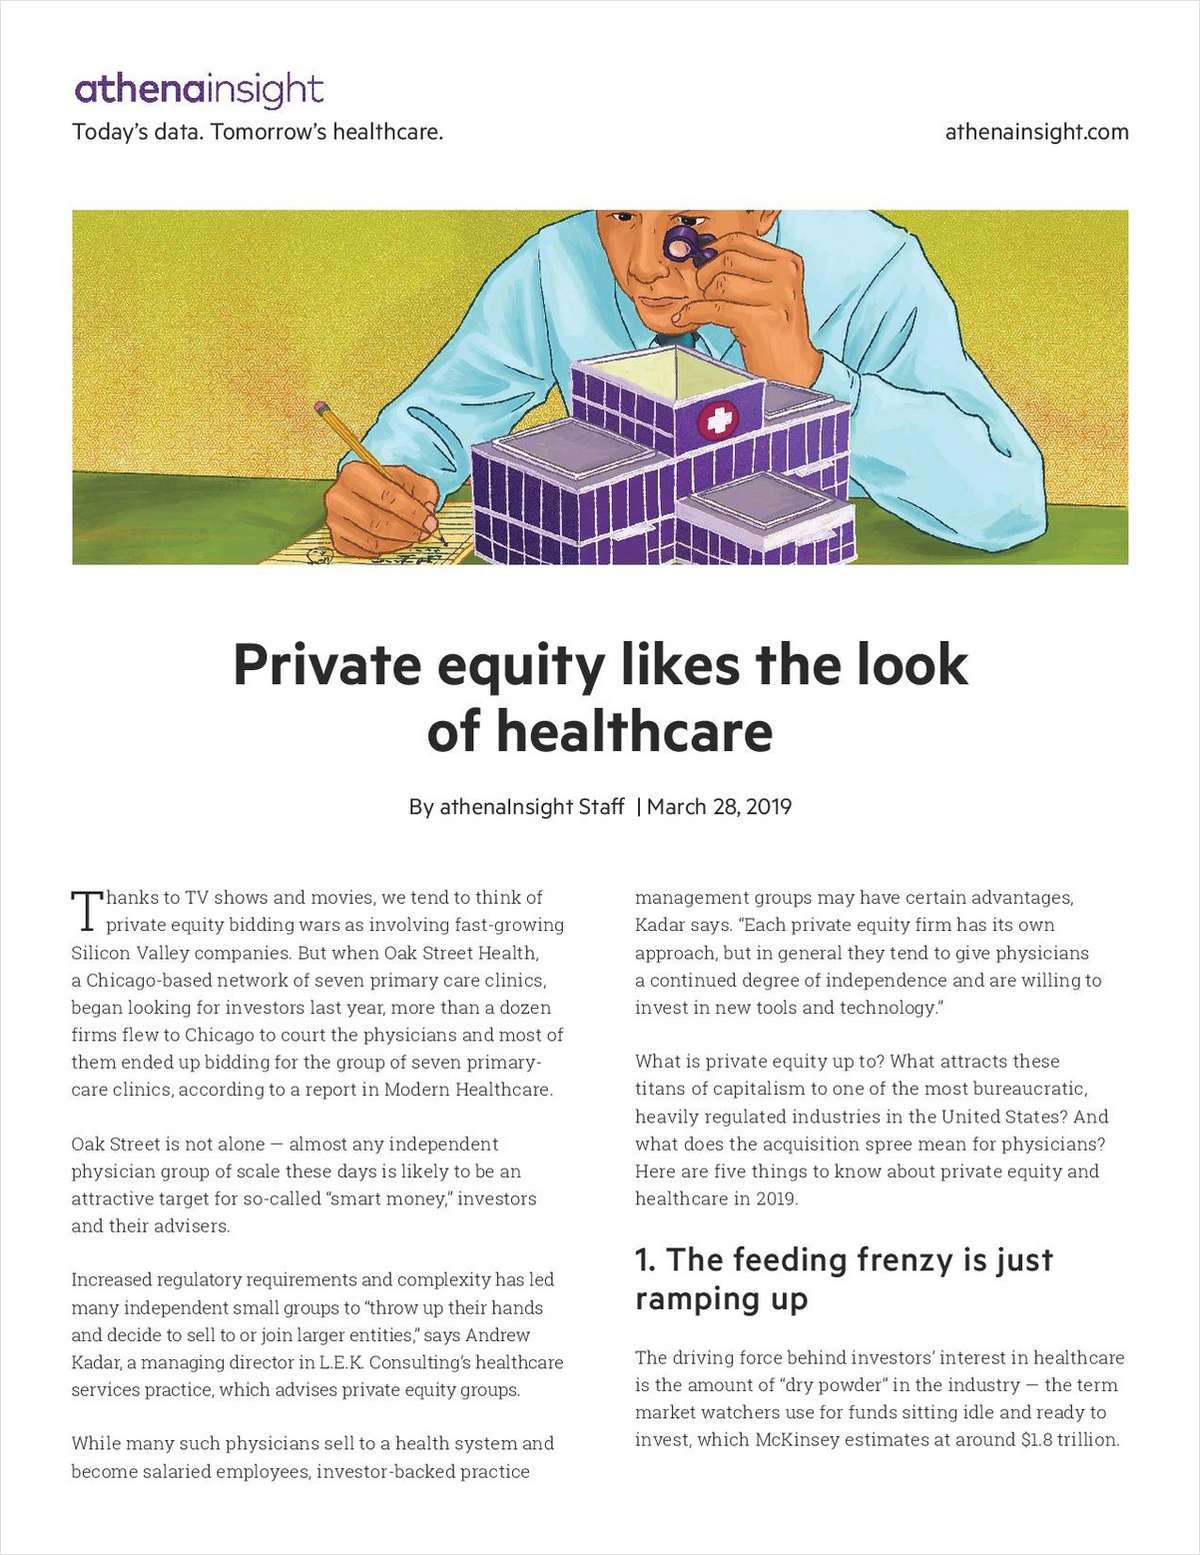 Article: Private equity likes the look of healthcare